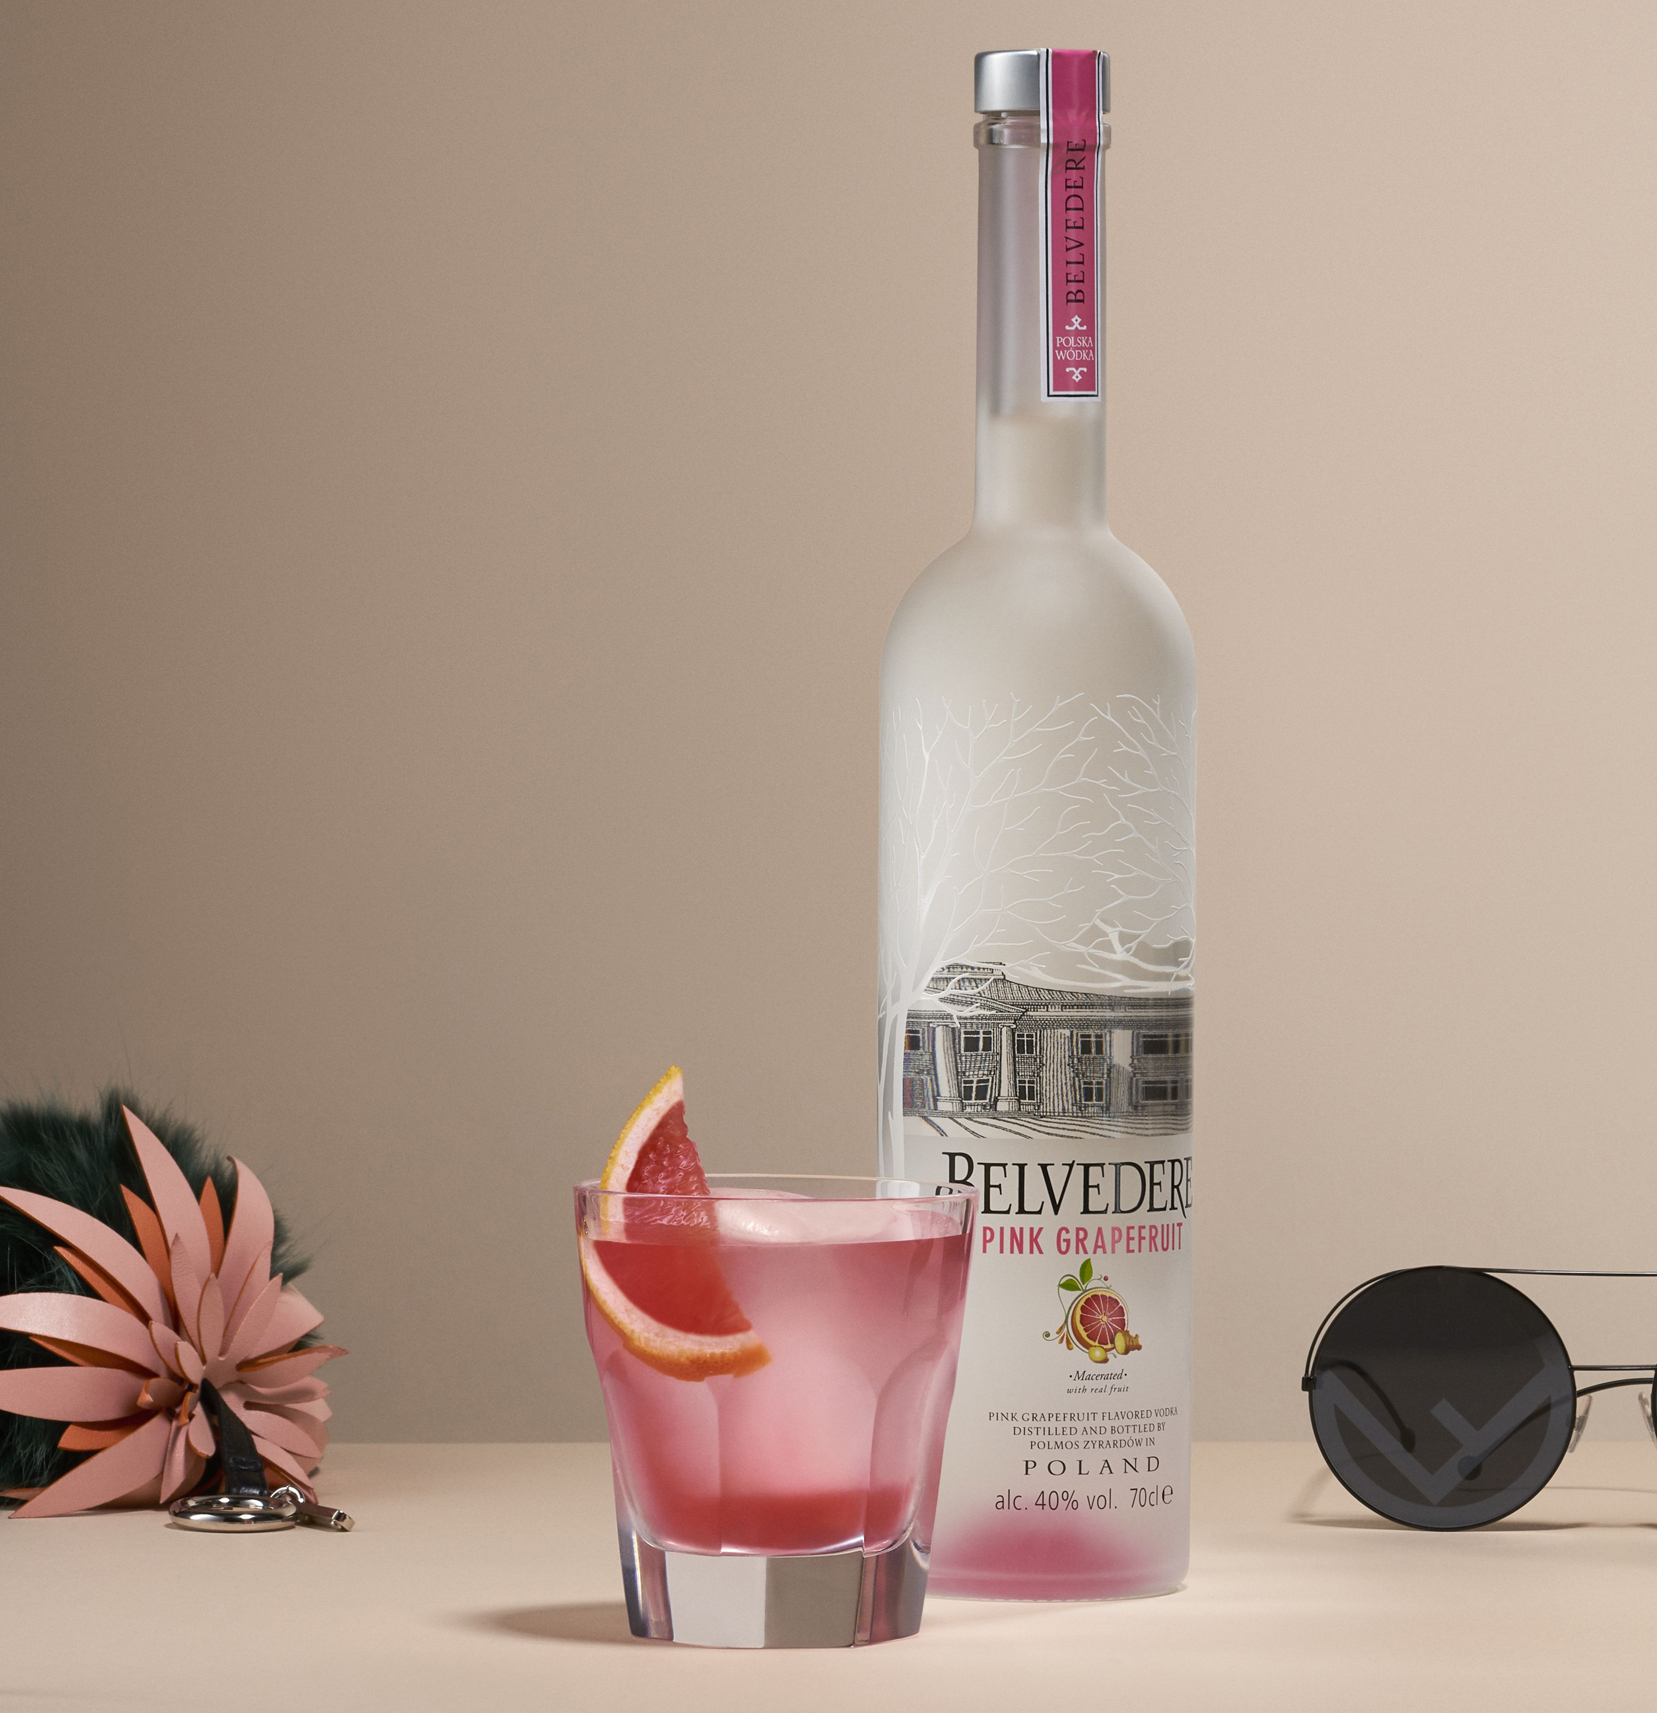 Belvedere Pink Grapefruit Vodka cocktail